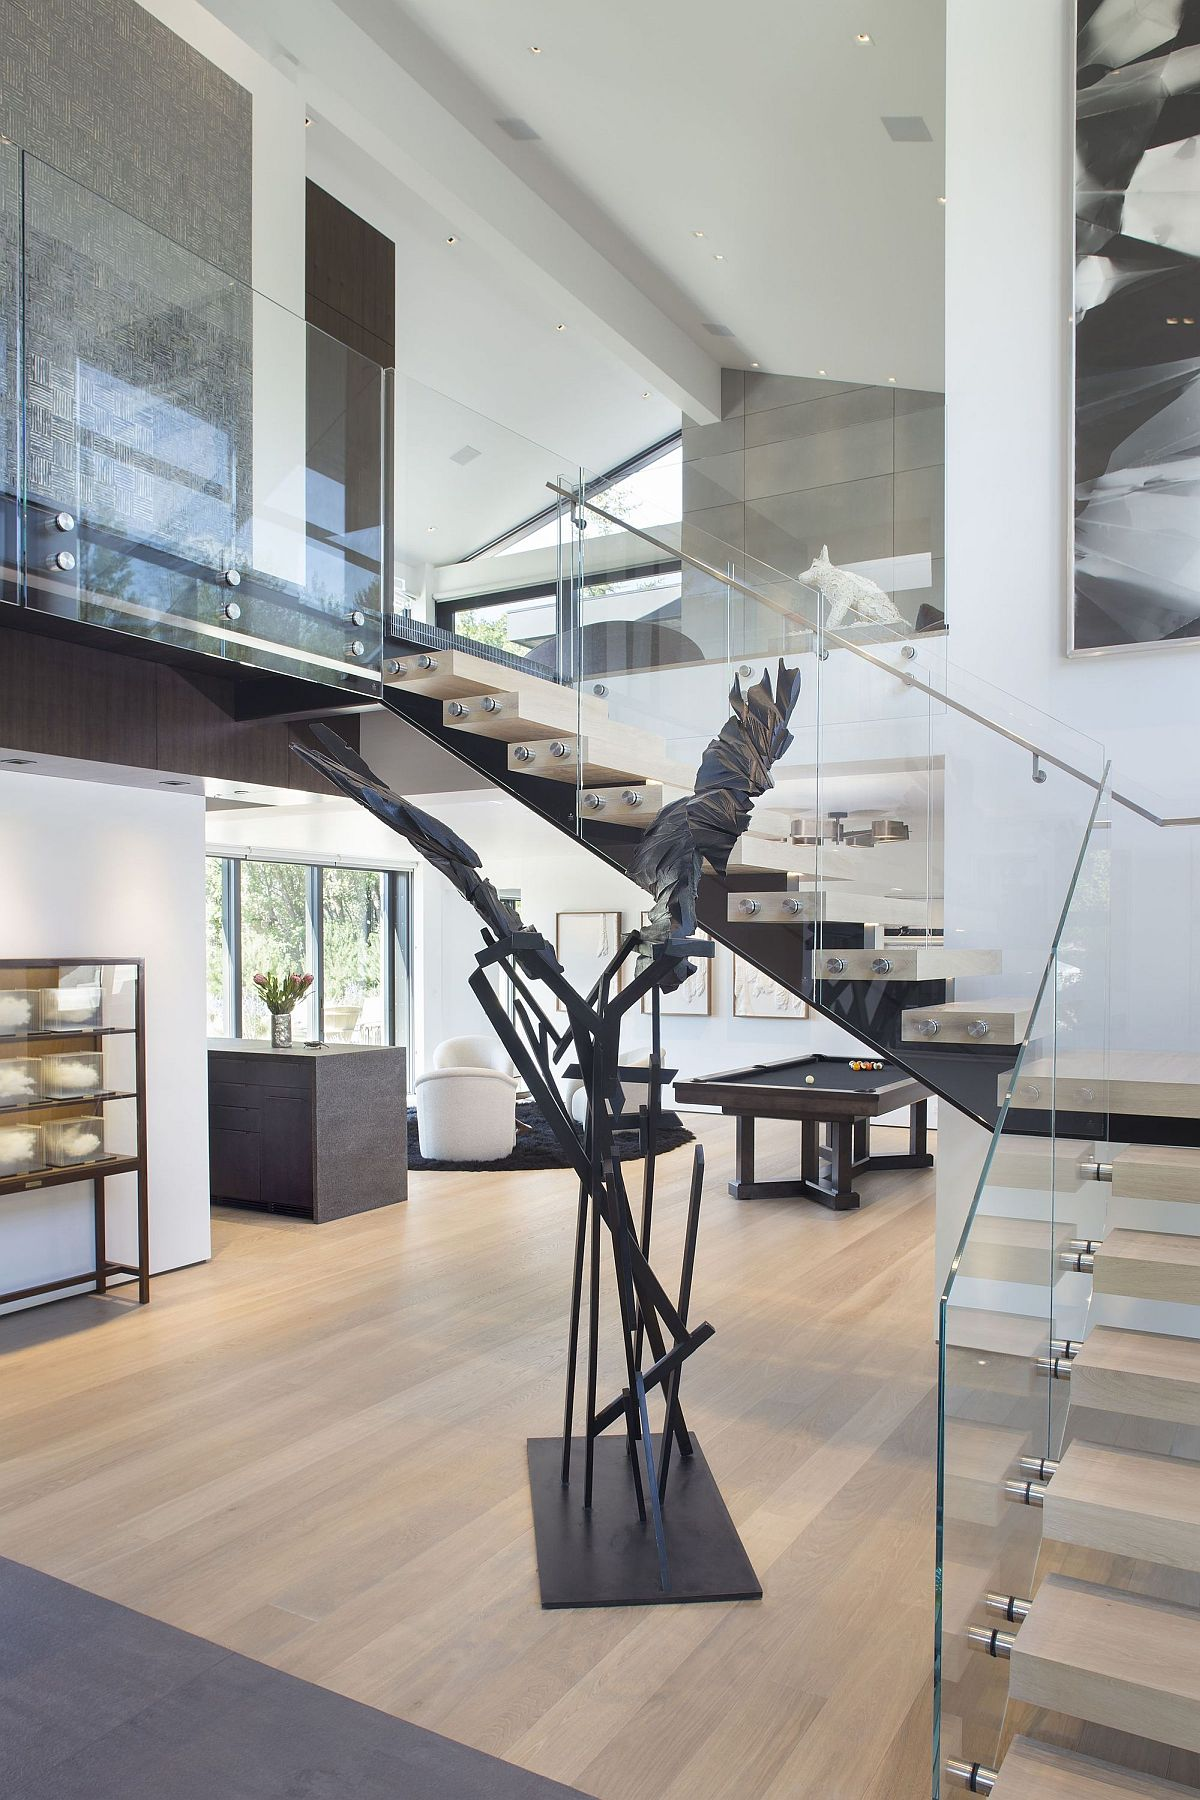 Glass-railing-for-the-wooden-staircase-gives-your-home-a-more-modern-and-airy-appeal-75967